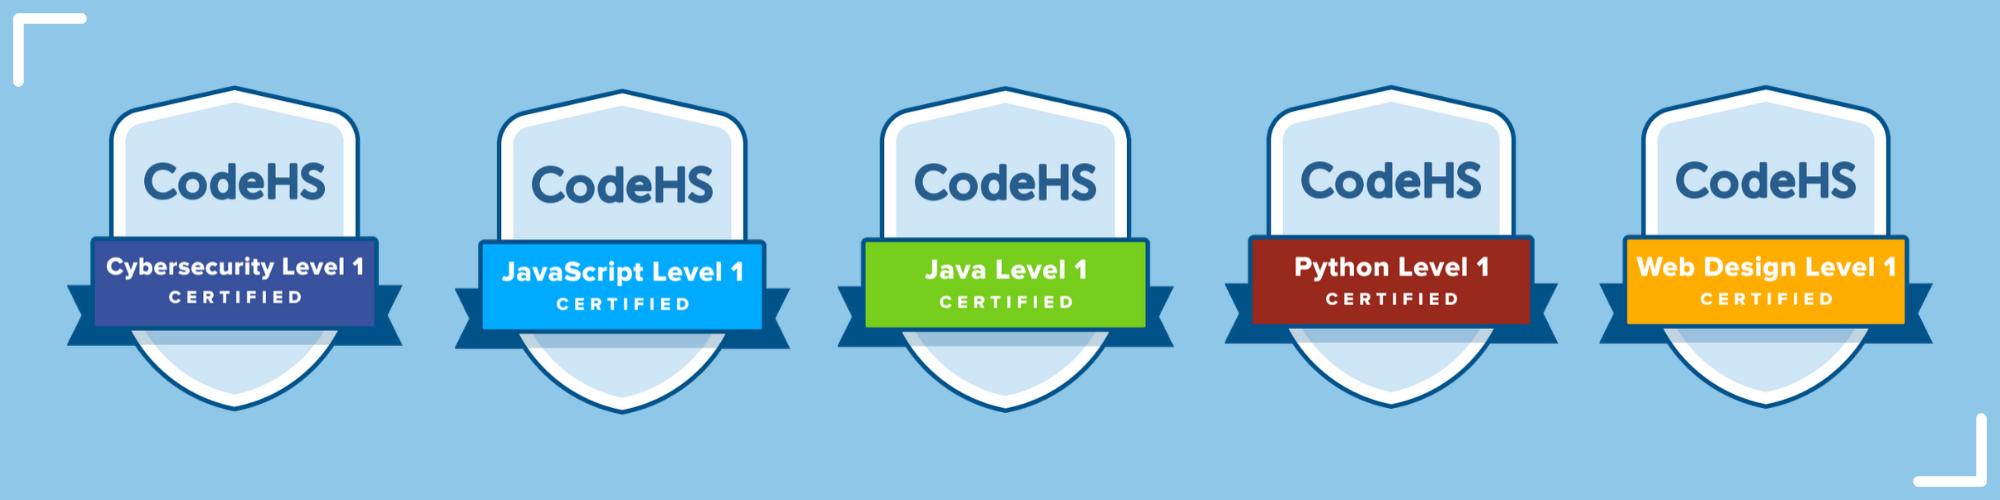 badges labeled with different codehs certifications